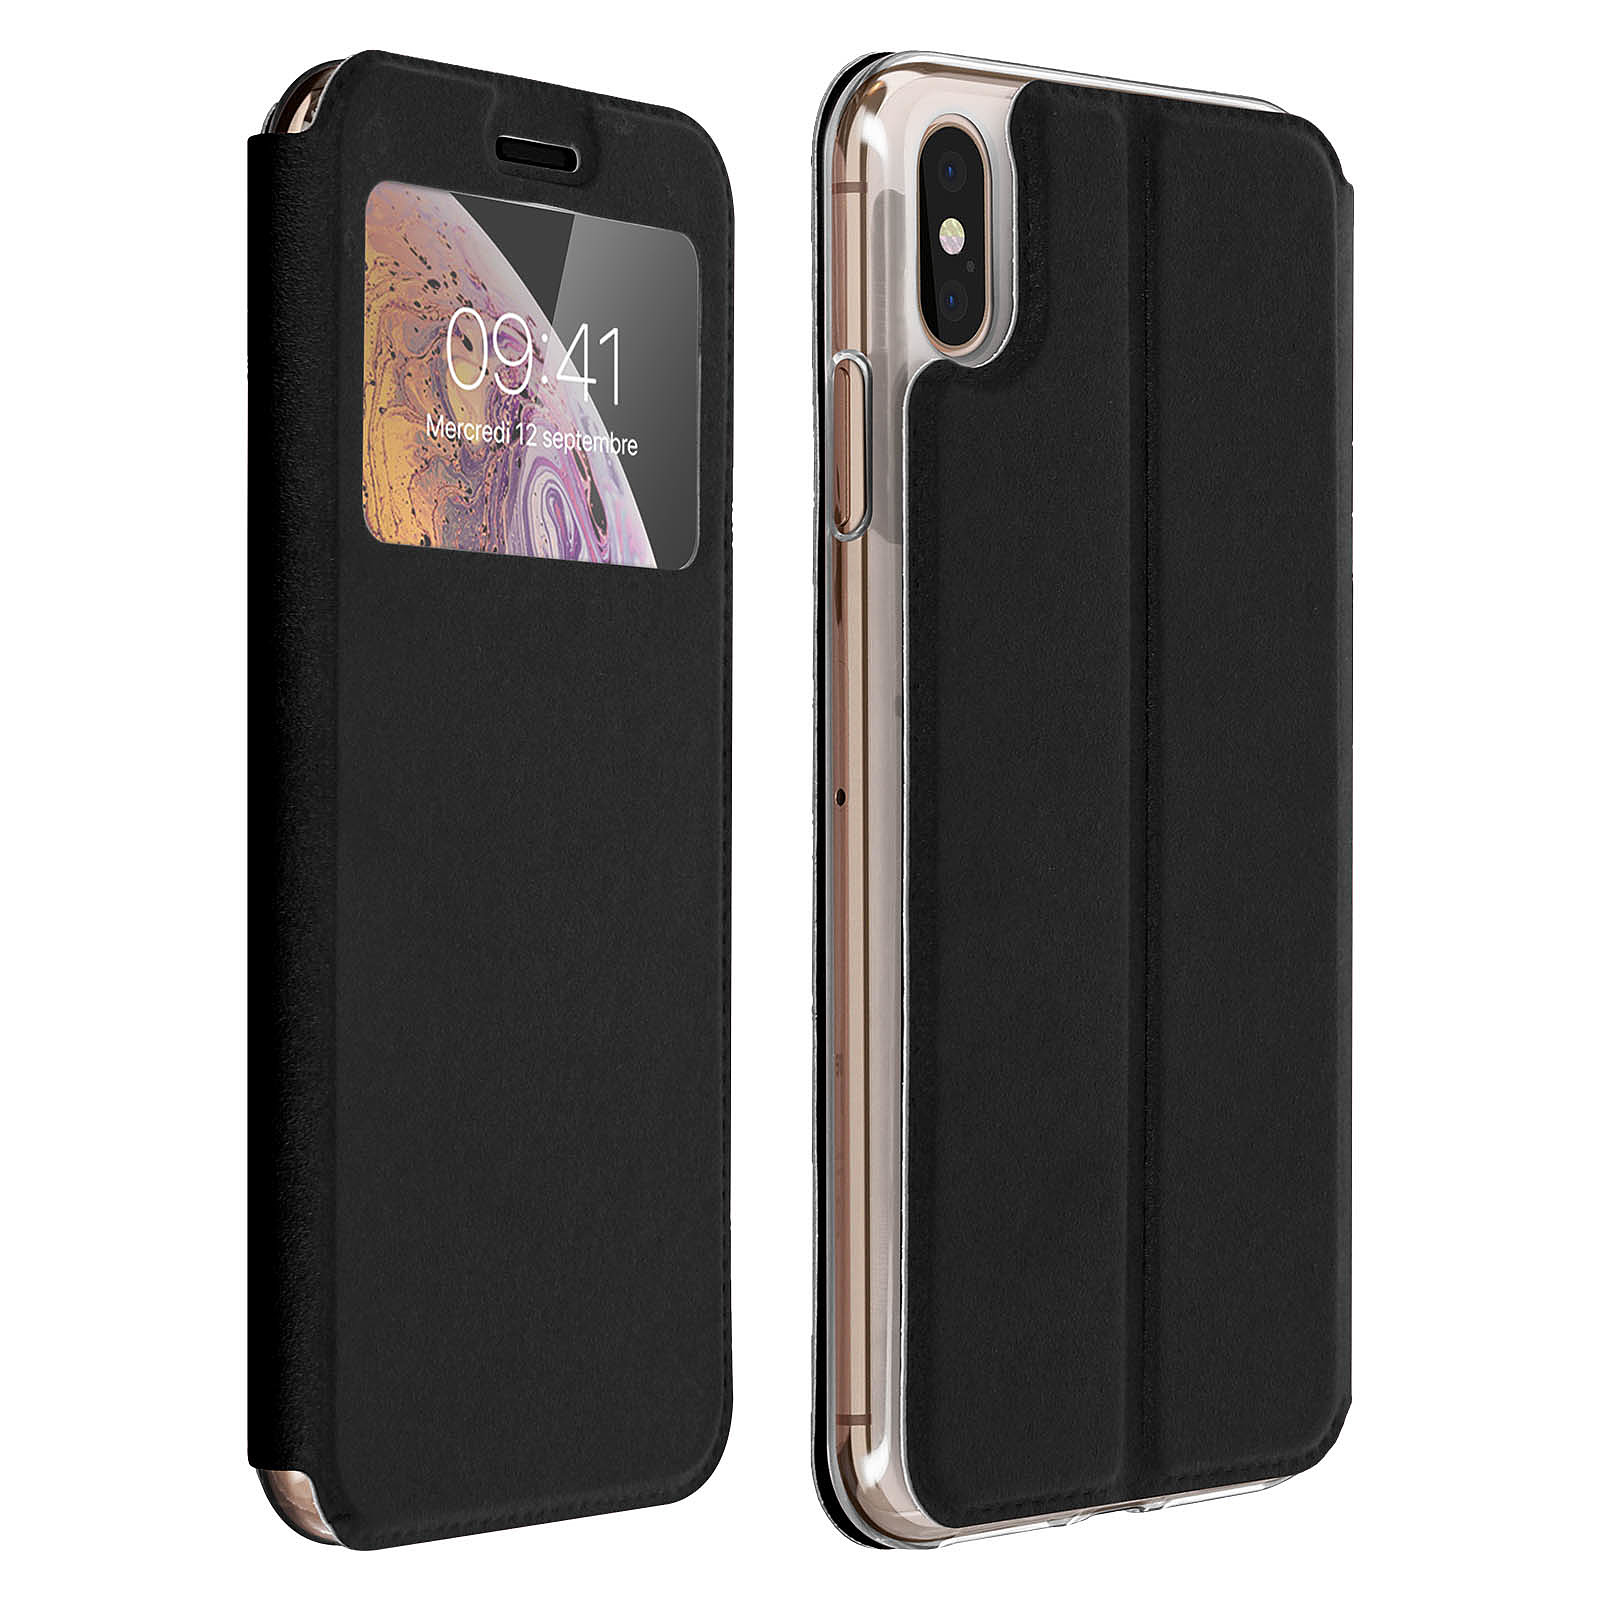 Avizar Etui folio Noir pour Apple iPhone XS Max